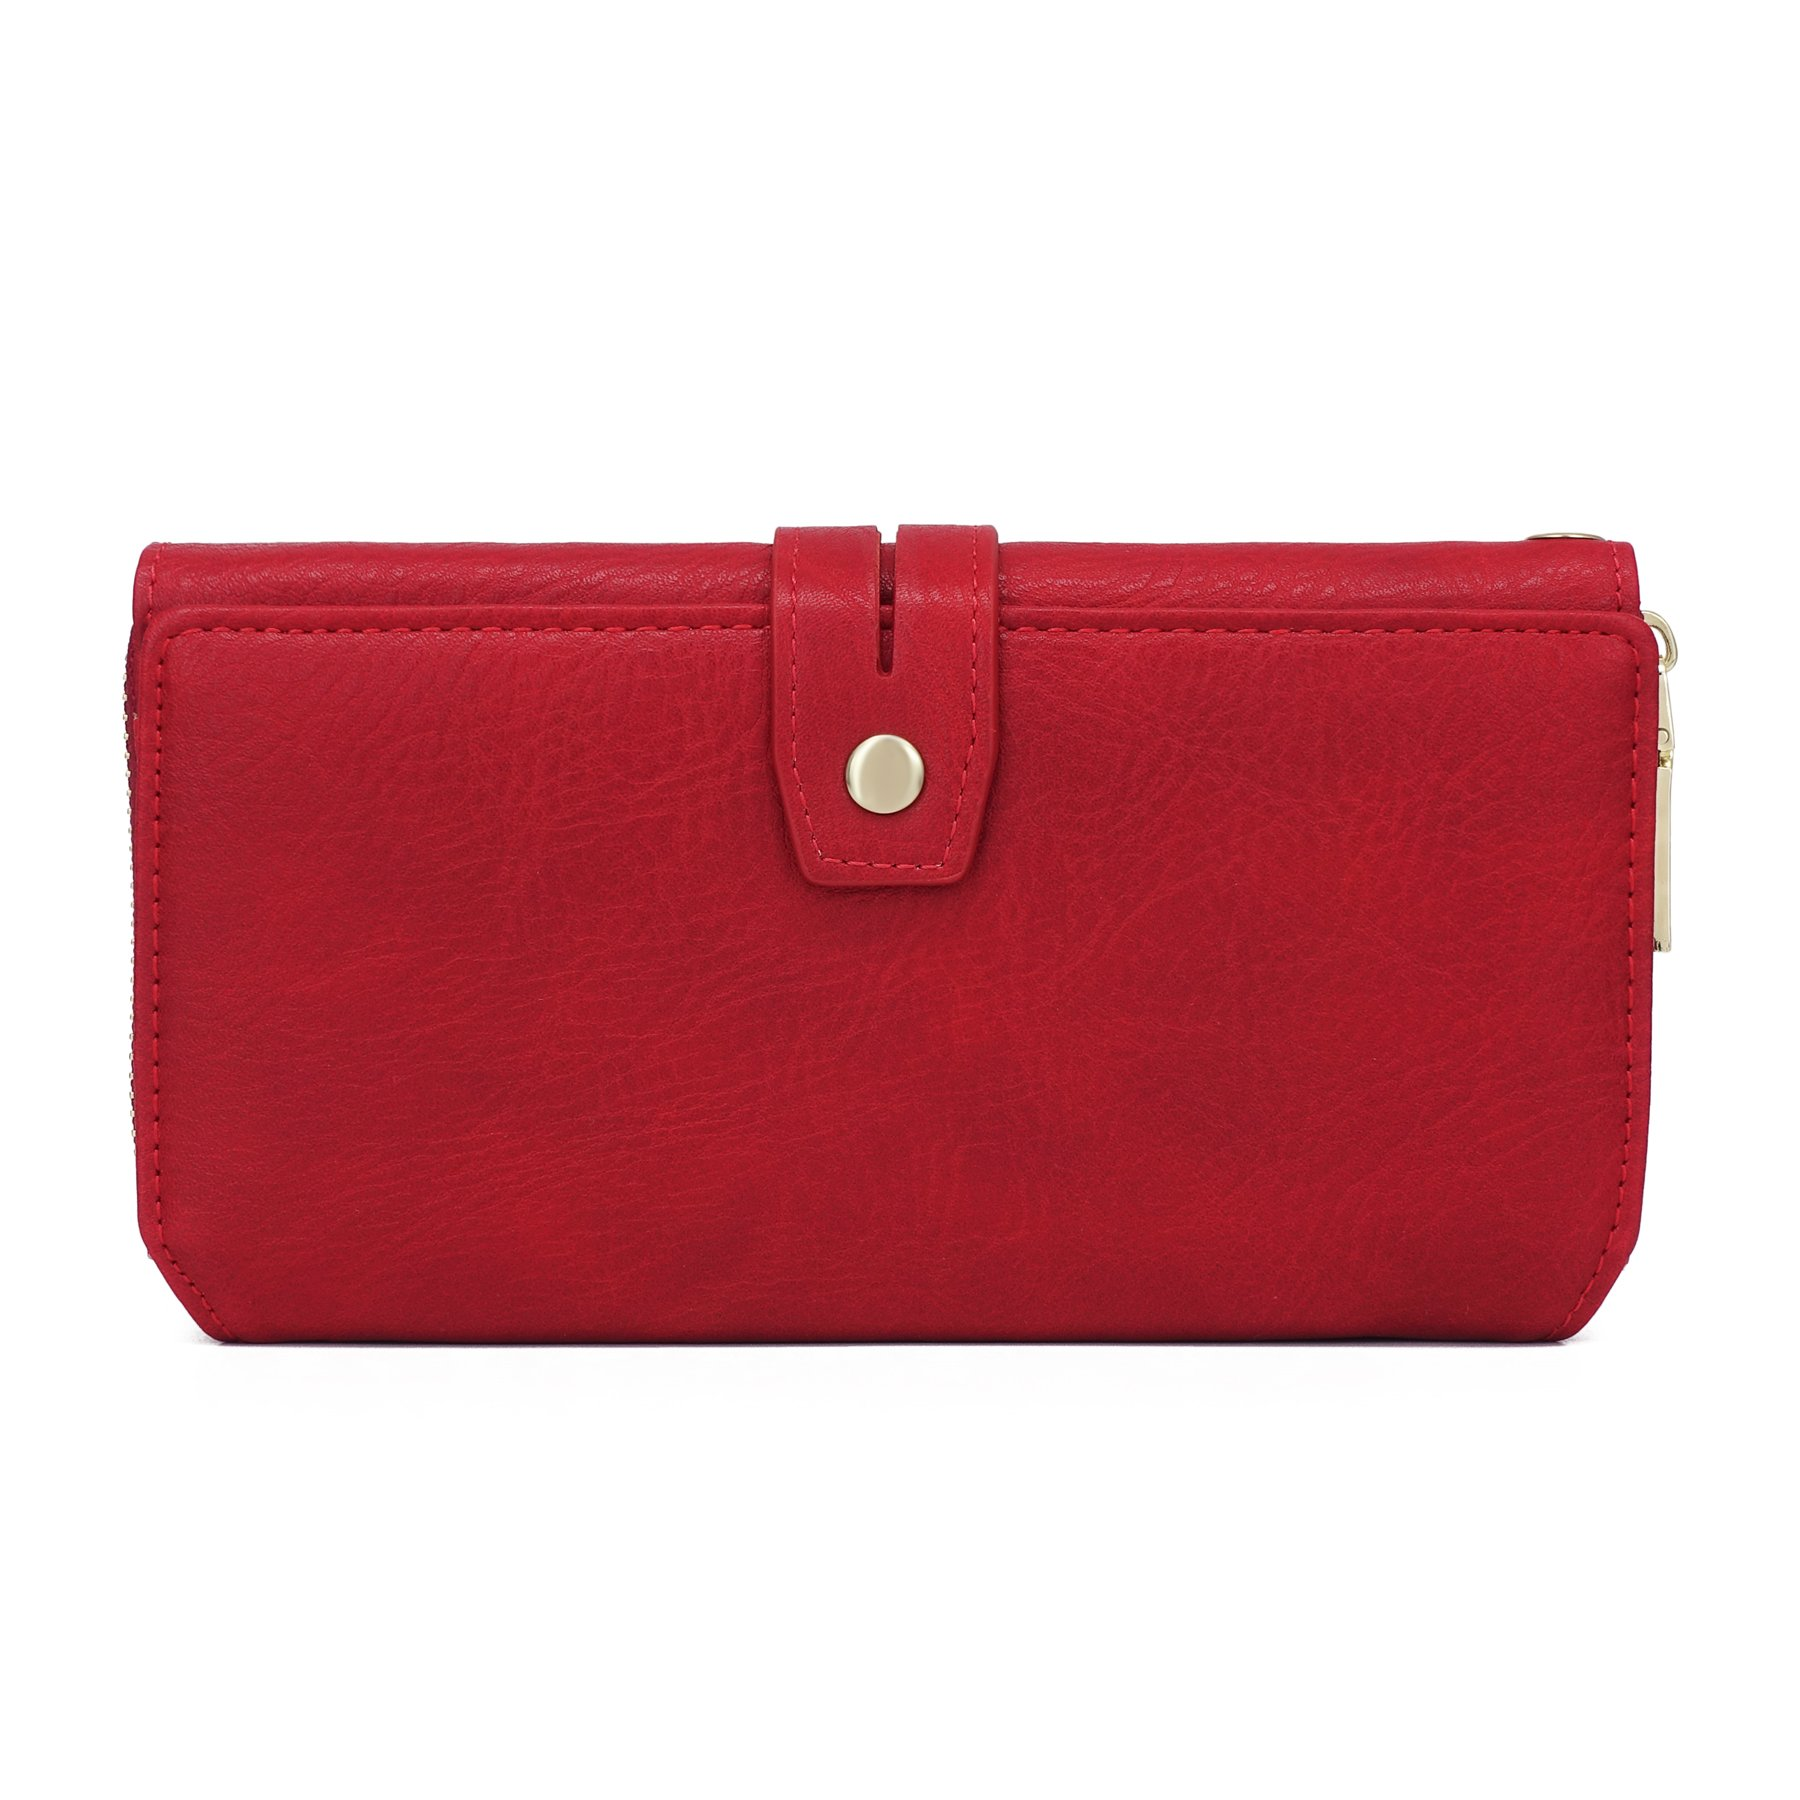 WOZEAH Women's PU Leather RFID Large Capacity Long Wallet Clutch Pures handbags Credit Card Holder Organizer Ladies Purse (red) by WOZEAH (Image #2)